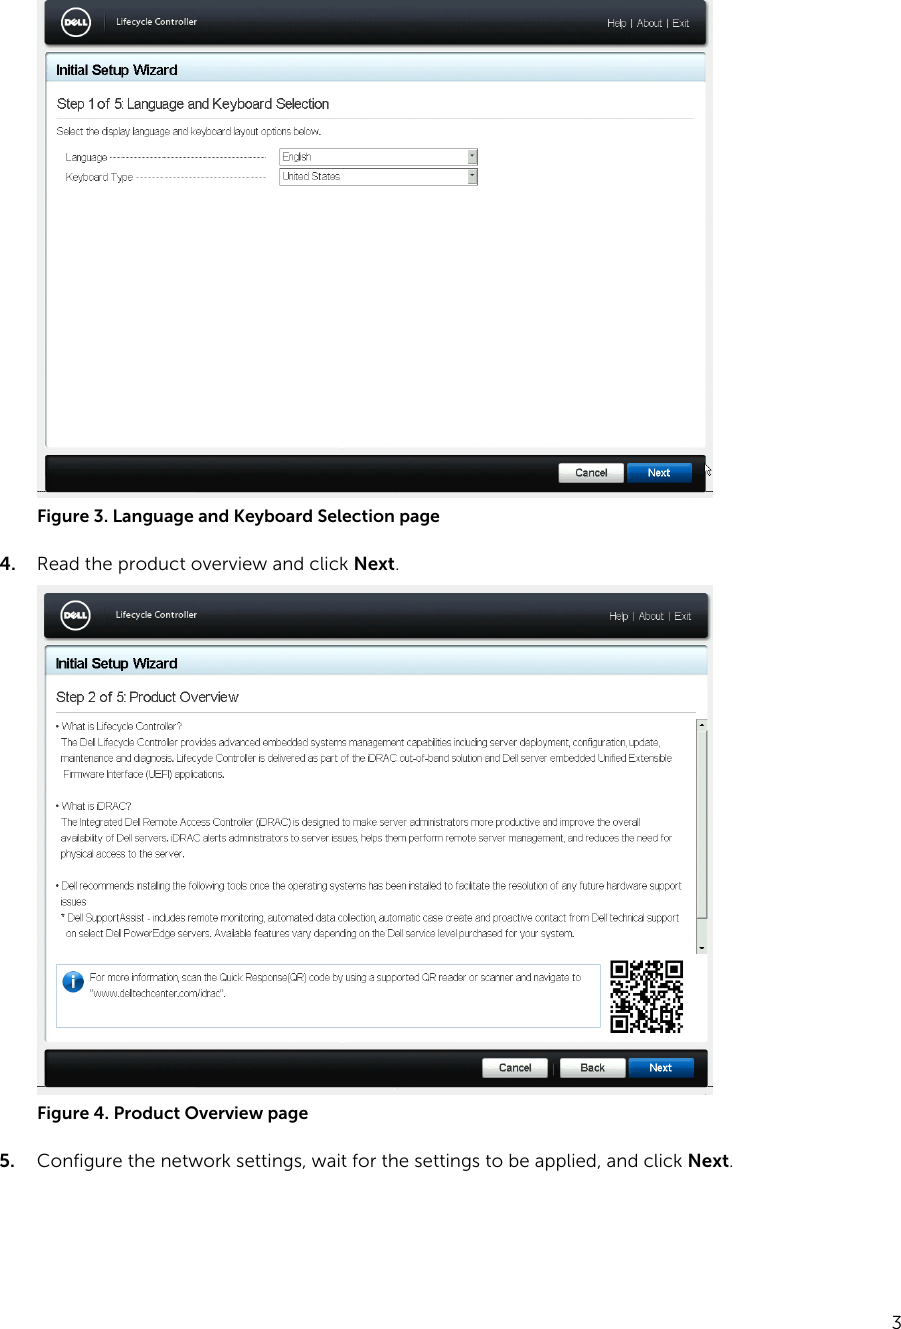 Dell Poweredge c4130 Setting Up Your Server Using Lifecycle